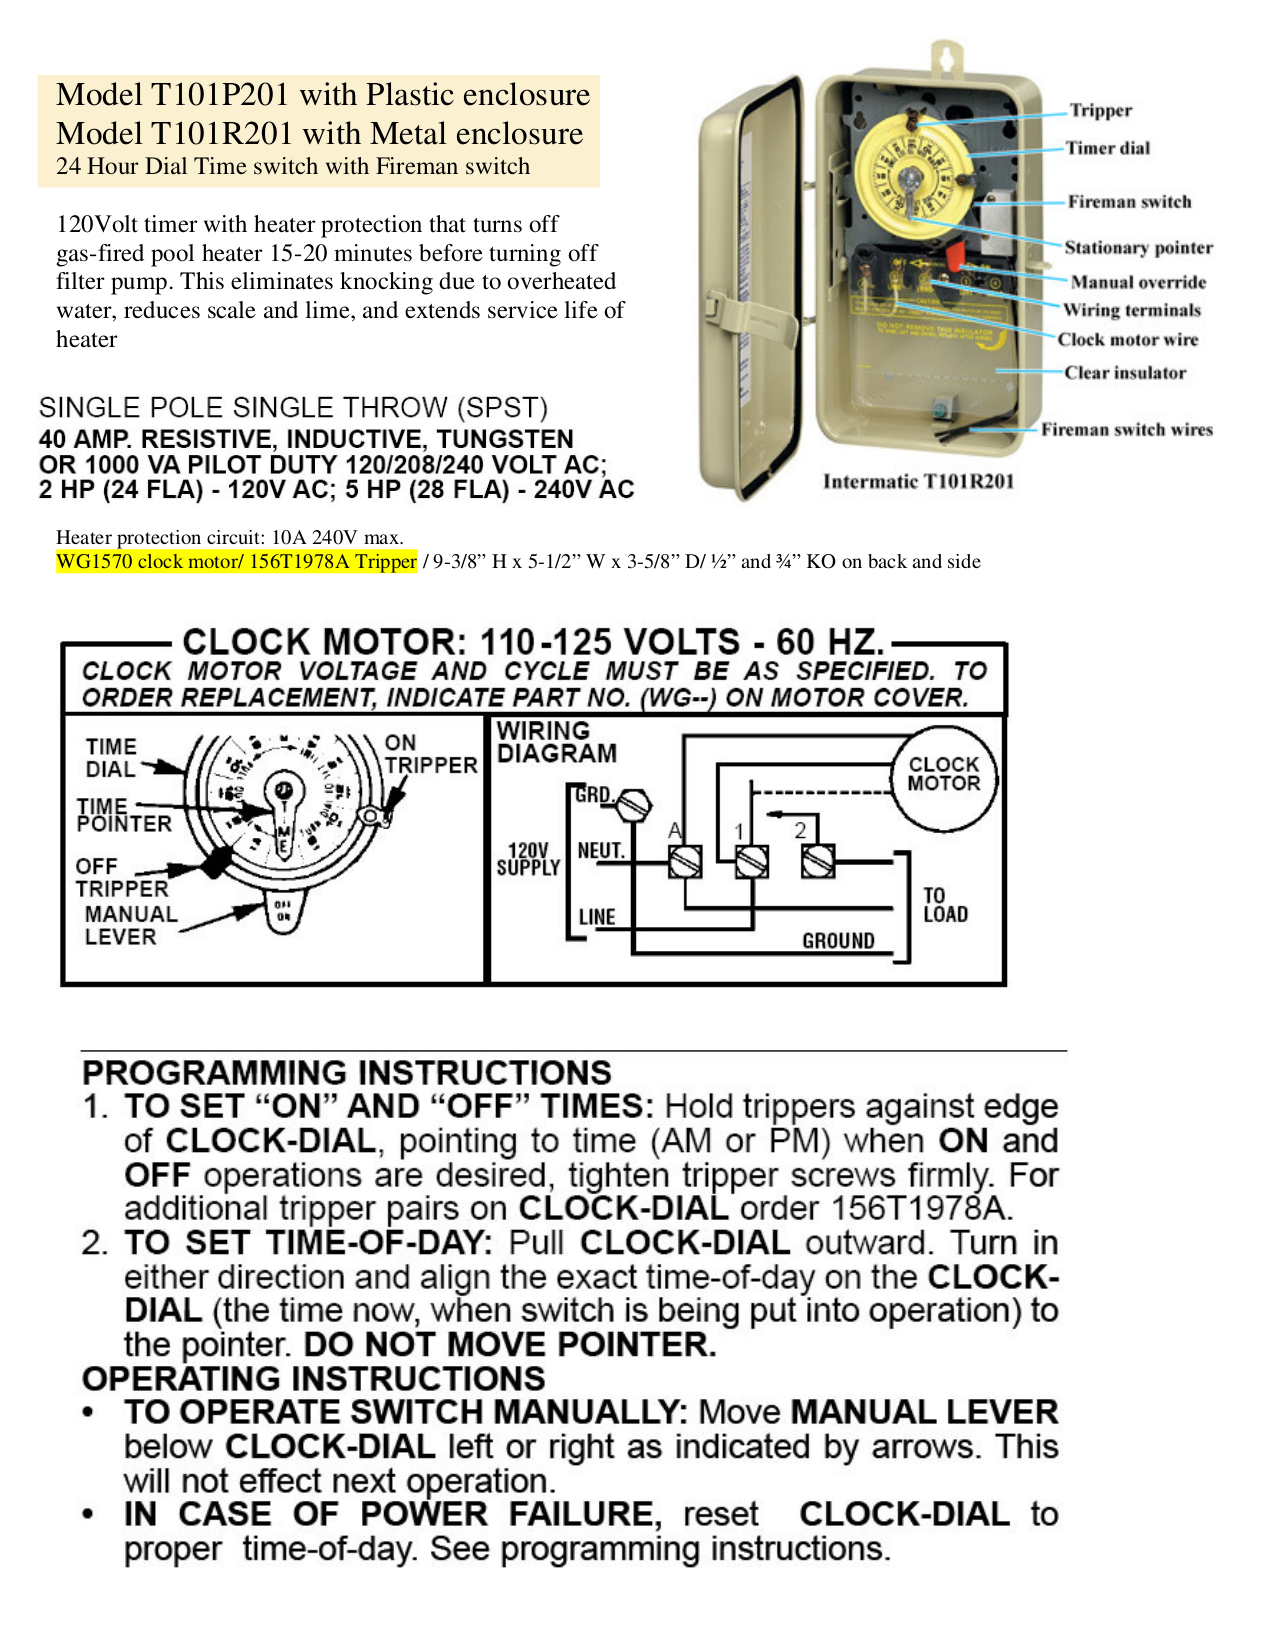 Intermatic T101R201 instruction manual.pdf 0 intermatic t101r wiring diagram intermatic t101 troubleshooting  at fashall.co